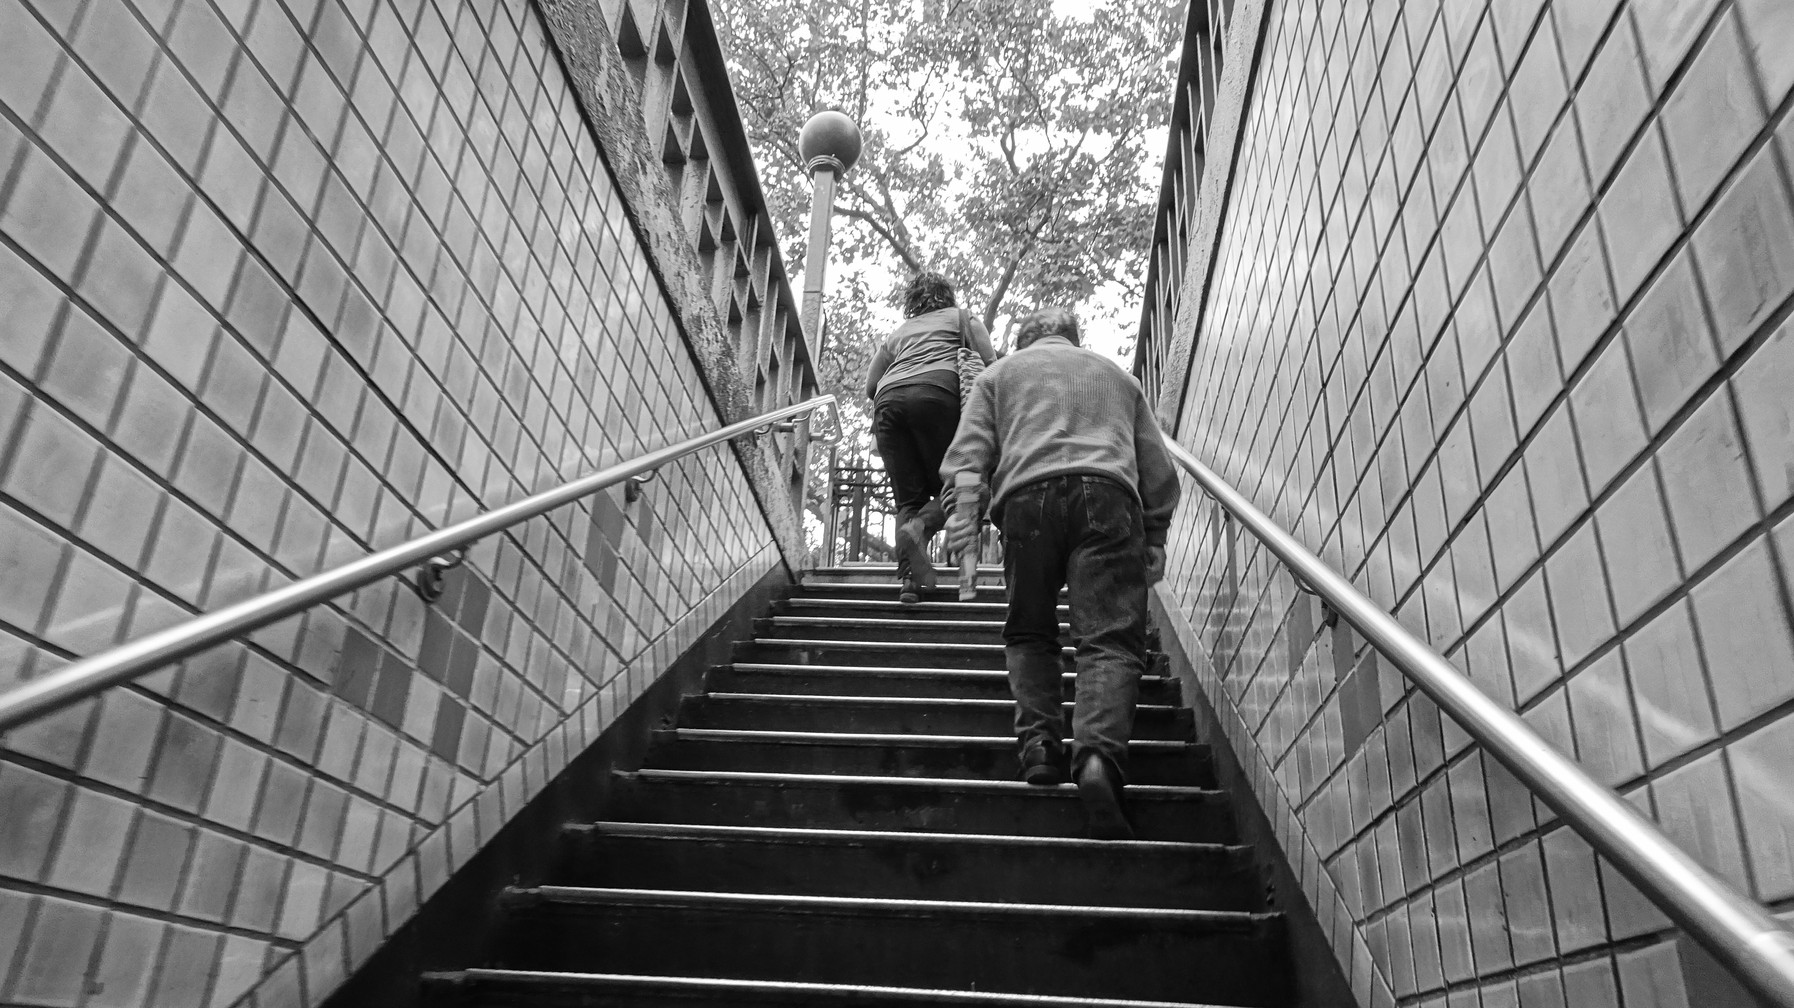 Stairway to 2nd Avenue